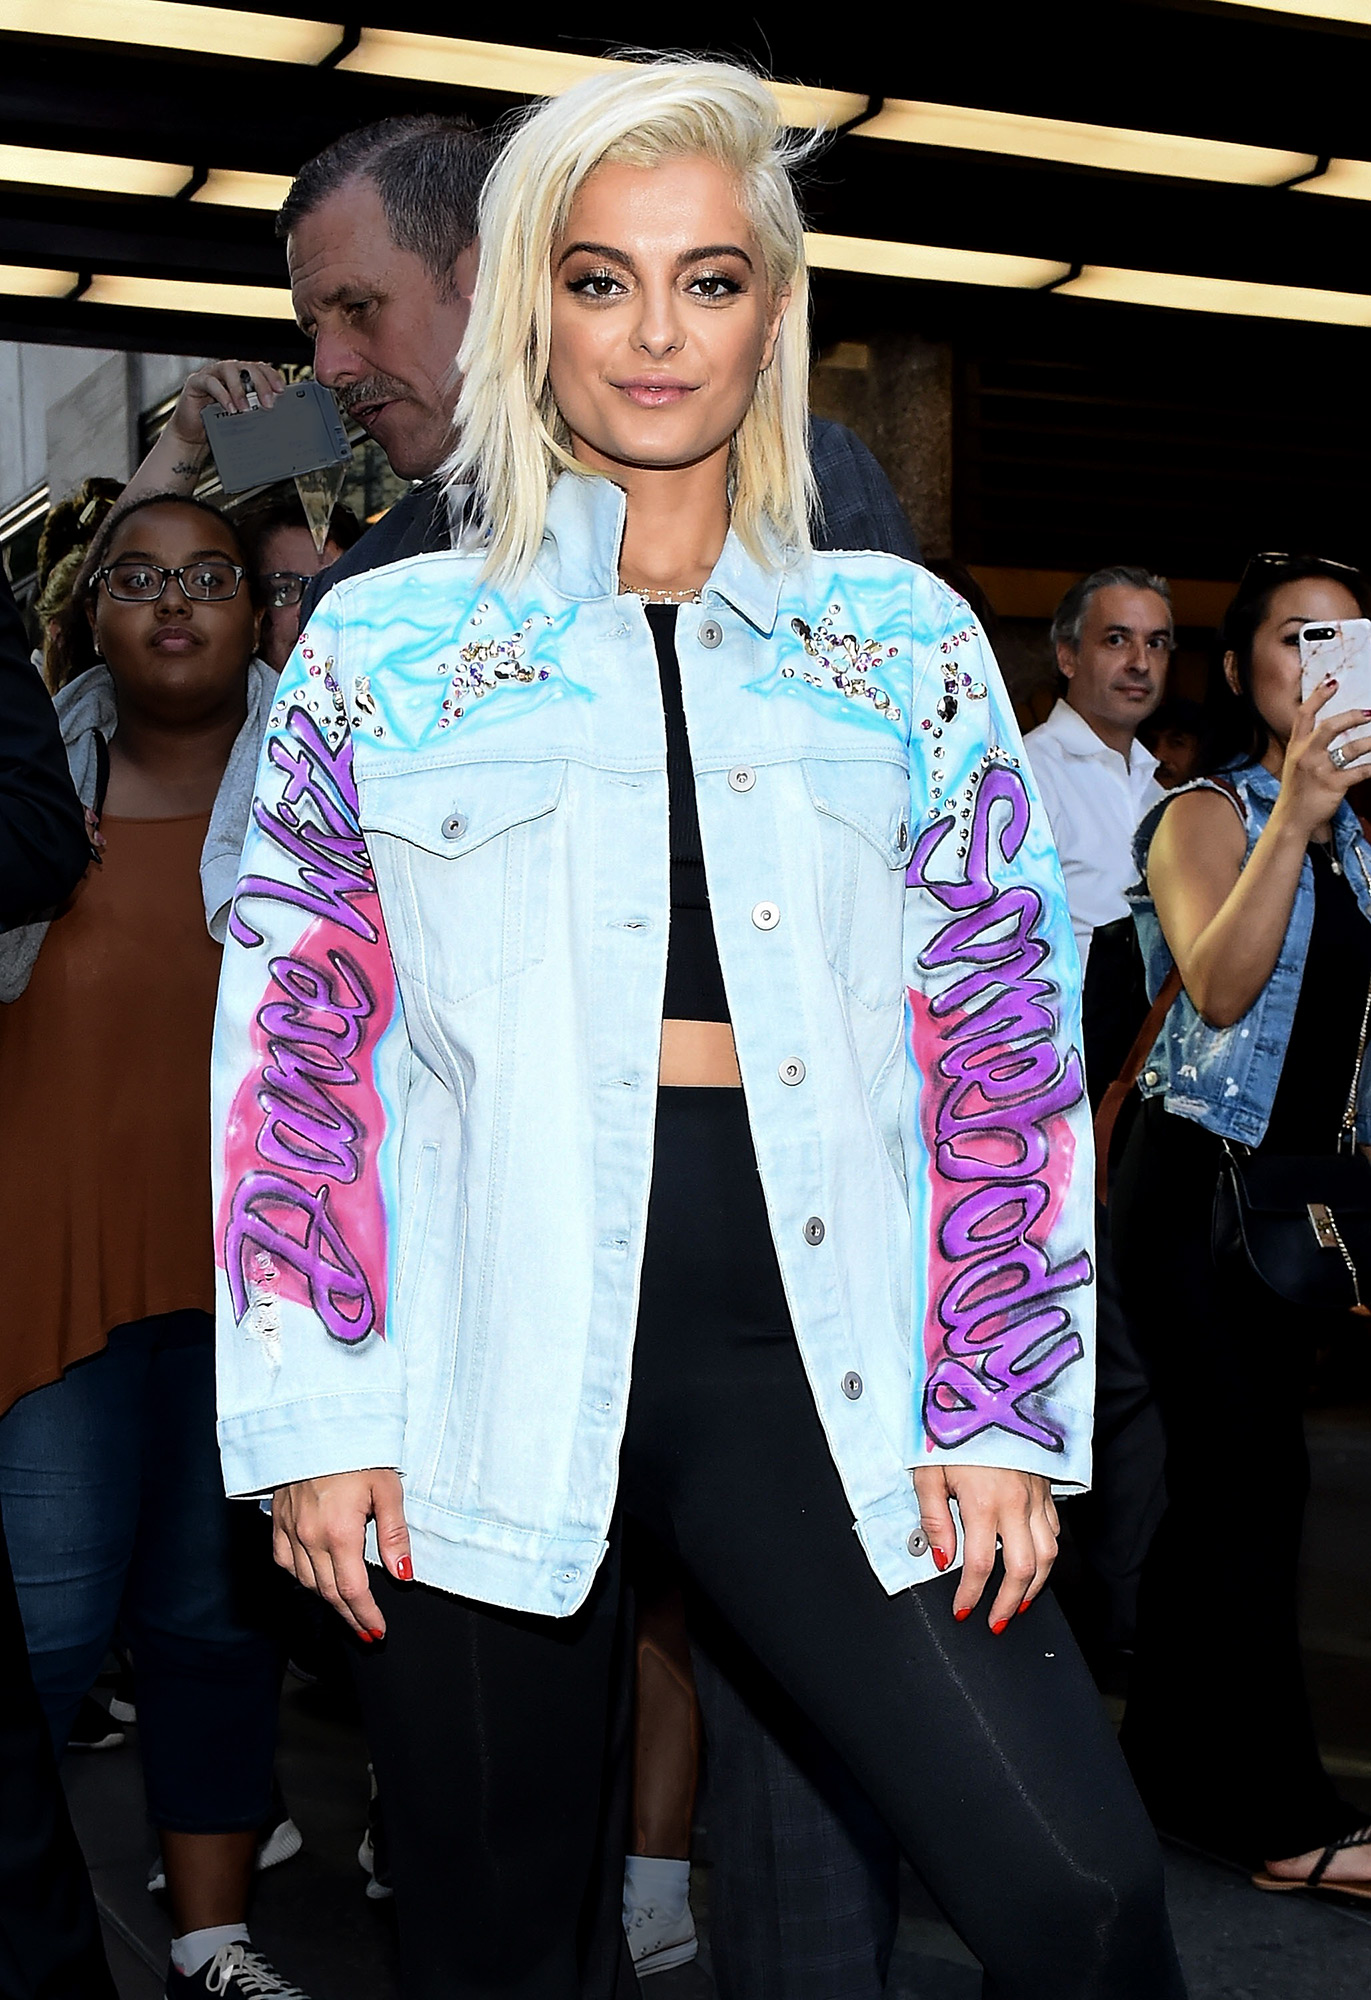 Bebe Rexha Wears Exclusive 'Bebe Rexha For Gilt' Jacket While In New York City